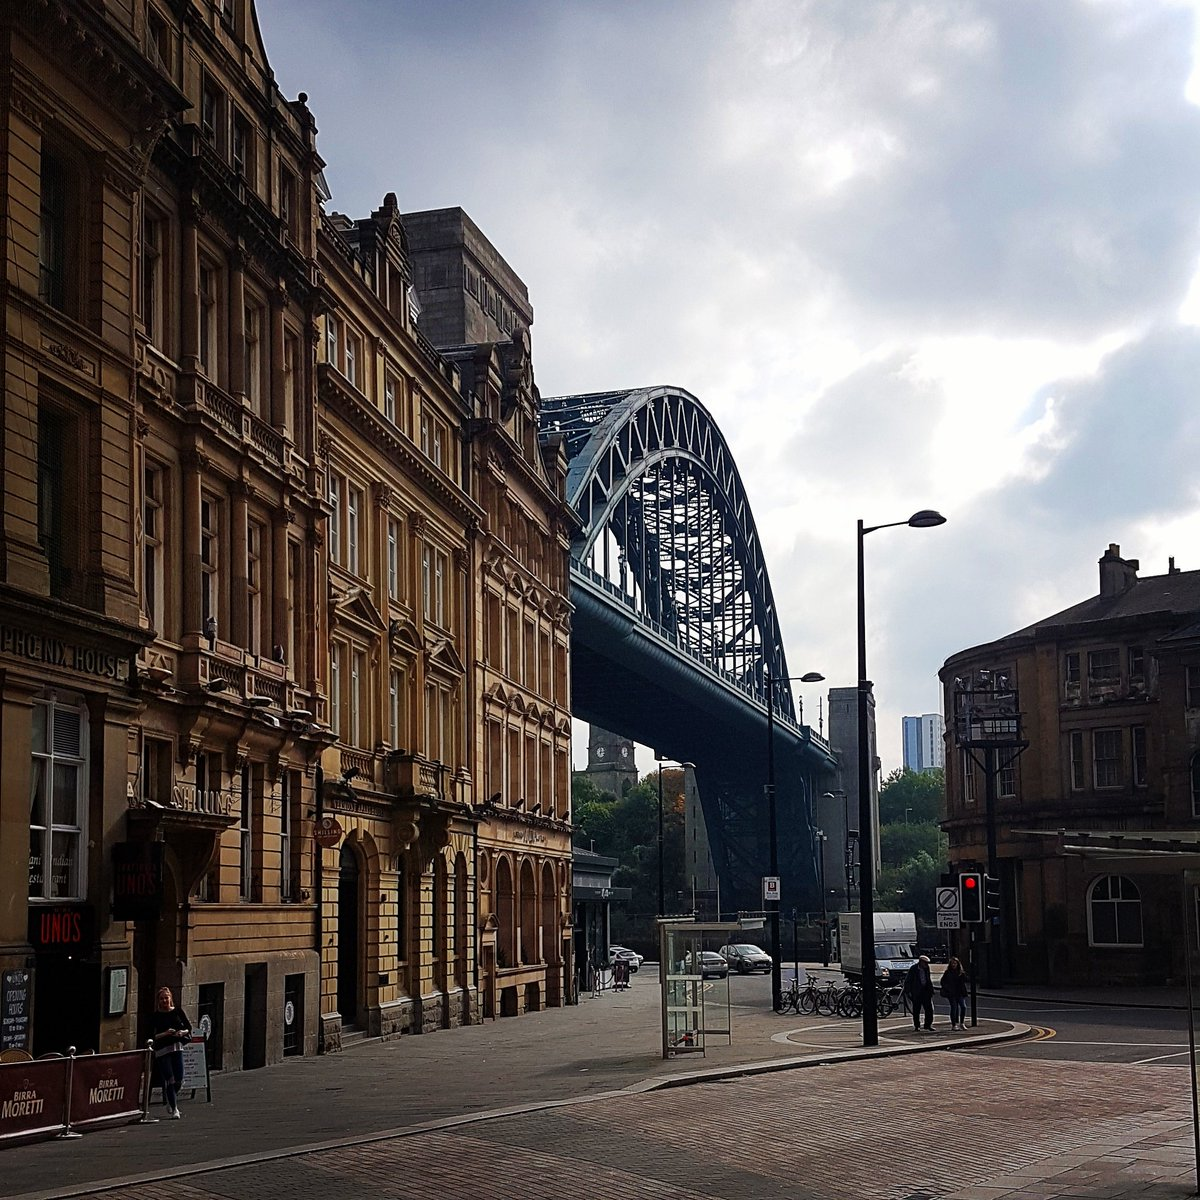 We&#39;re in beautiful Newcastle today installing Wi-Fi for a new client! #WiFi #communications #expert #innovation<br>http://pic.twitter.com/OmvCnazZS2